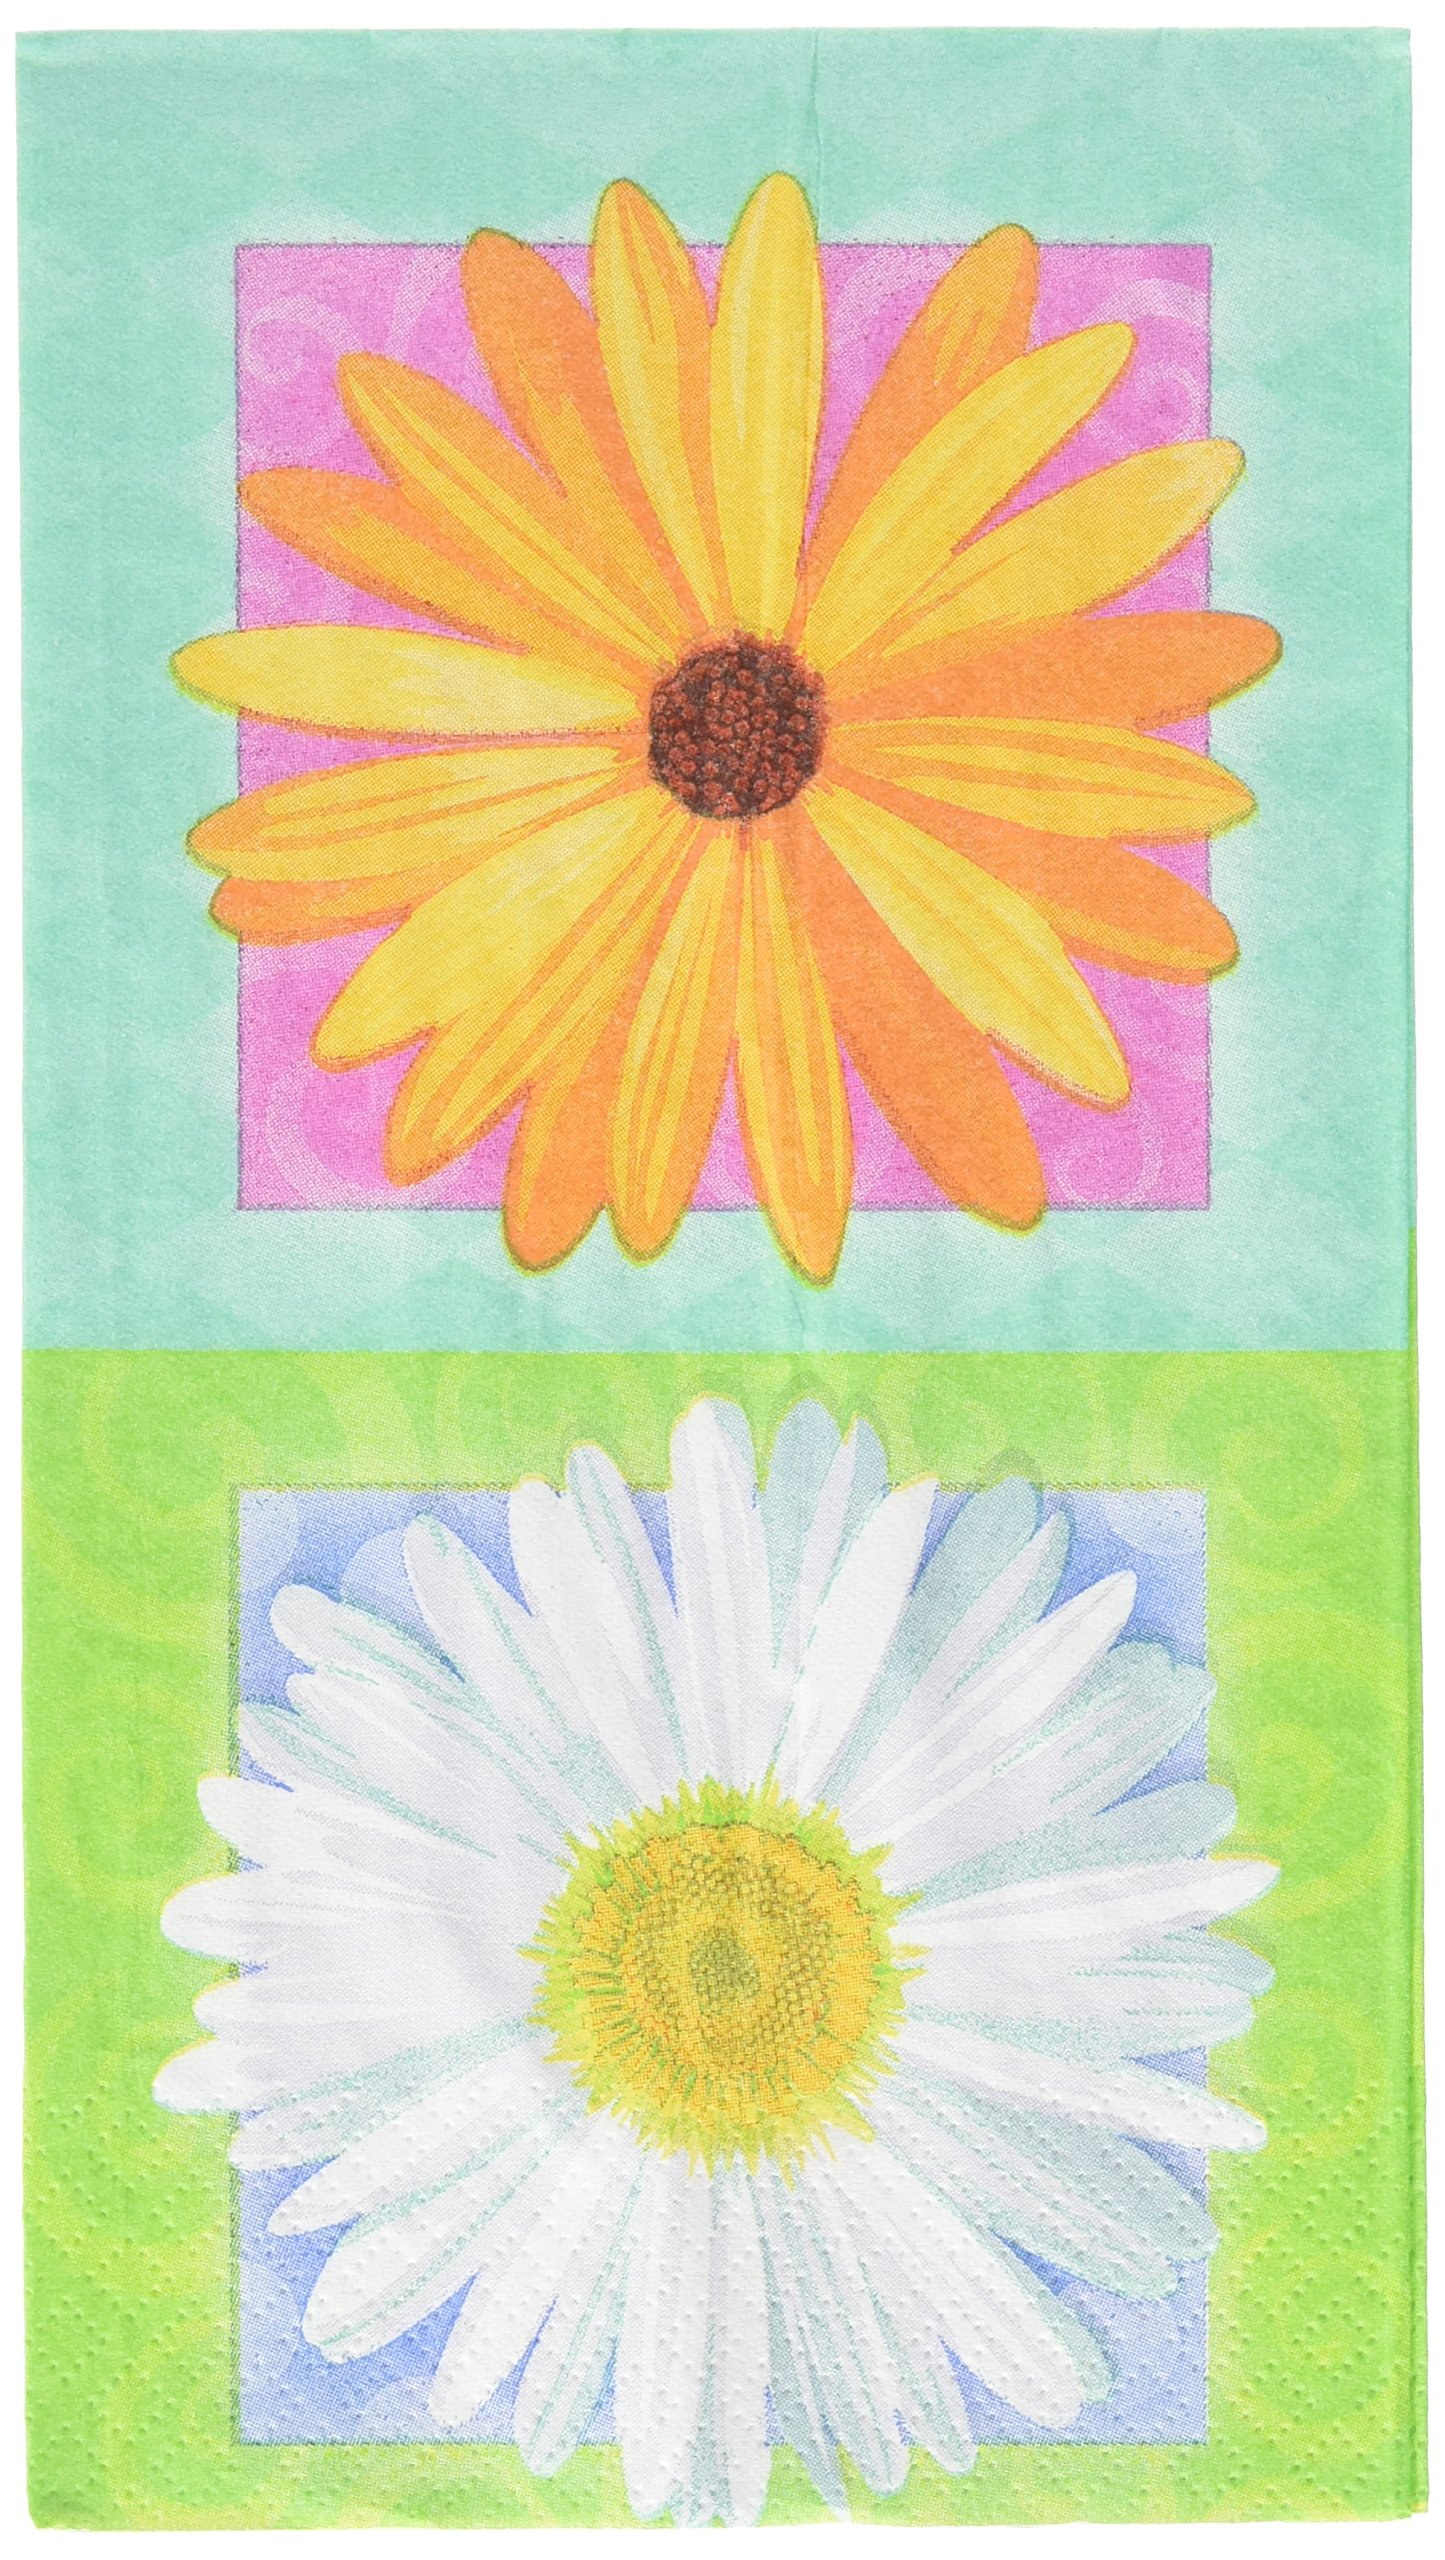 Amscan in Bloom Daisy Guest Towels   192 Ct.